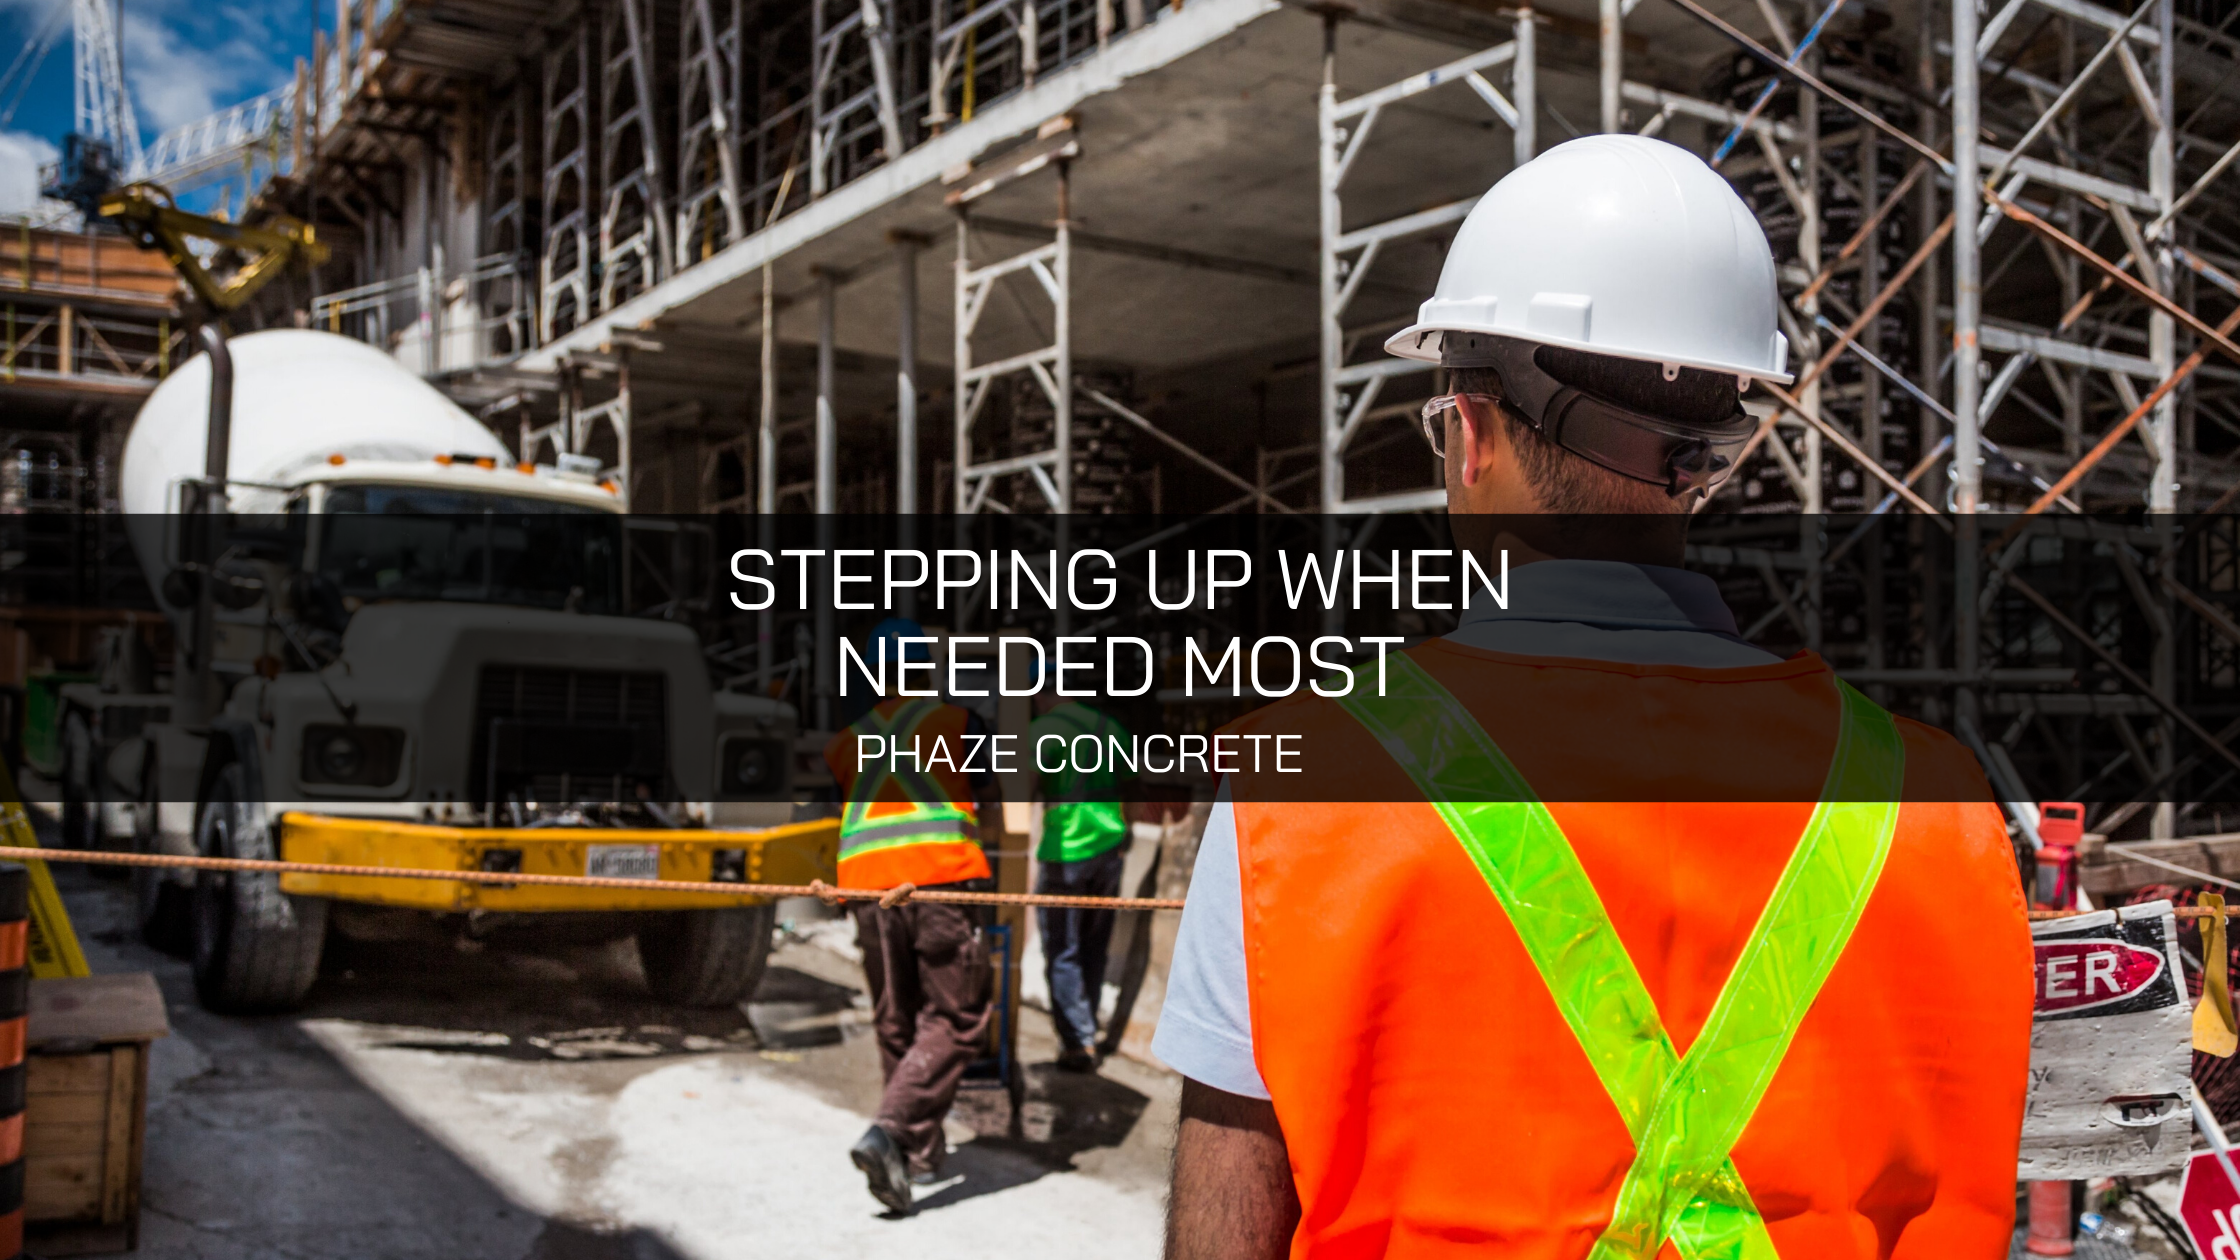 Phaze Concrete Steps Up When Needed Most